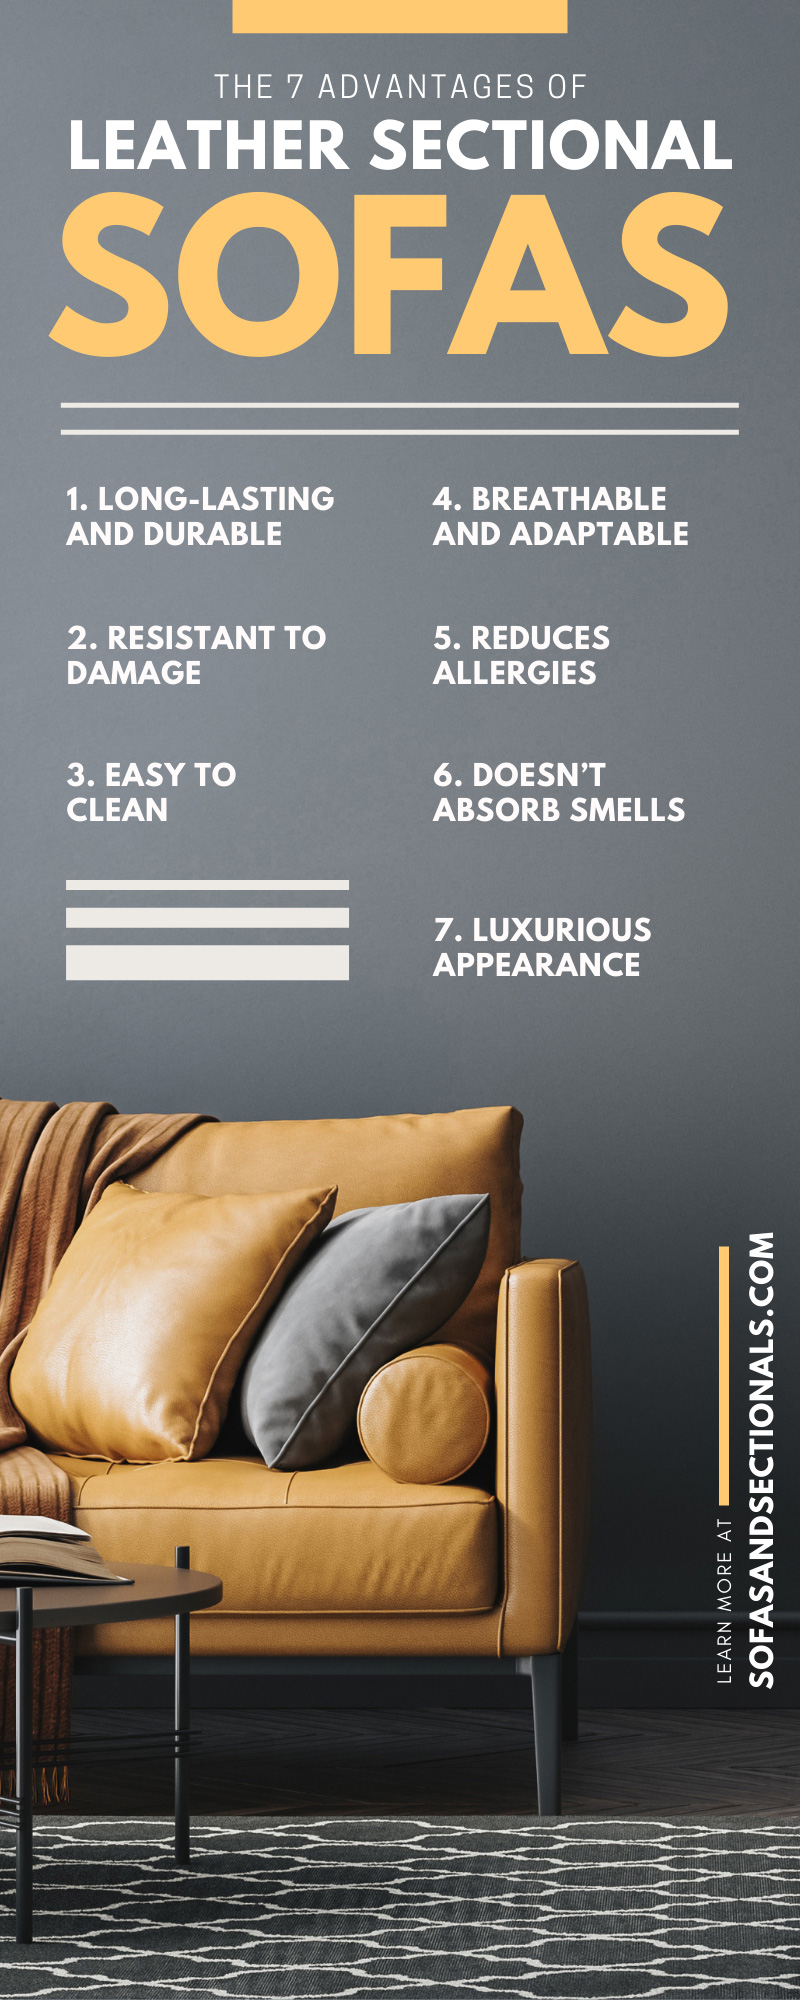 The 7 Advantages of Leather Sectional Sofas